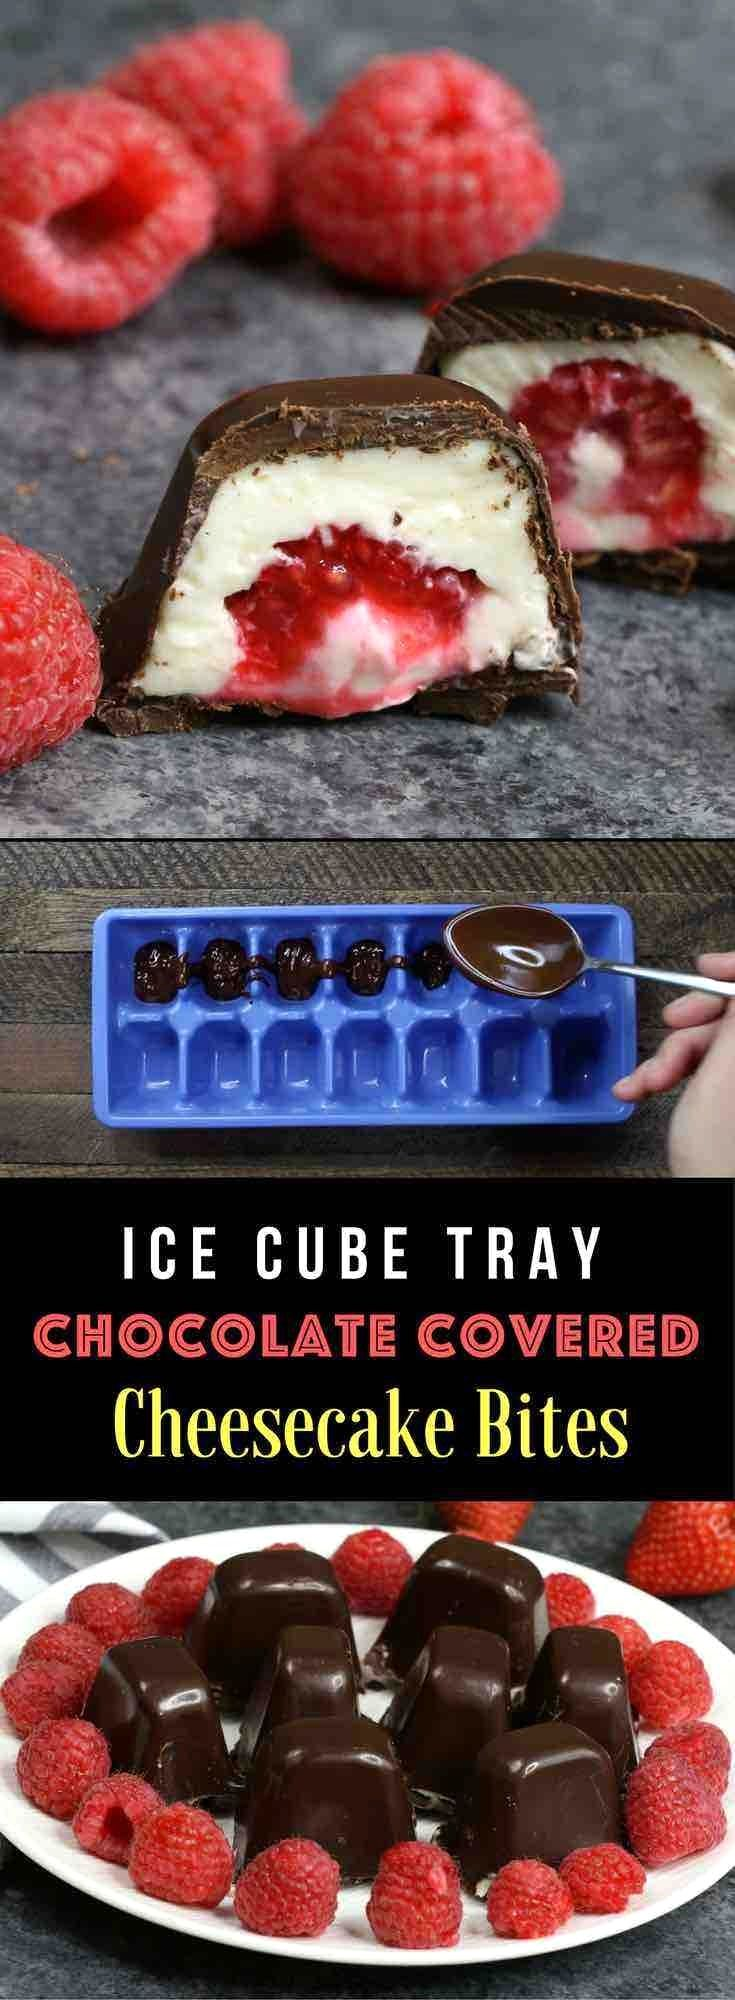 A recipe for cheesecake bites using an ice cube tray